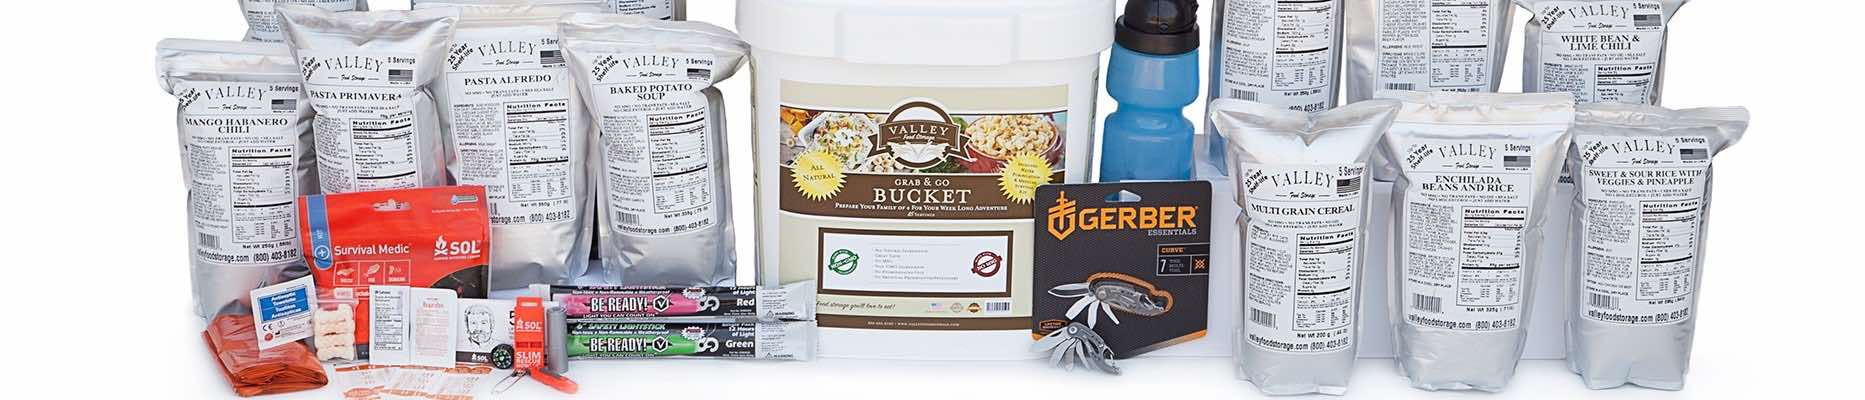 Grab and Go Emergency Food Supply Bucket Review